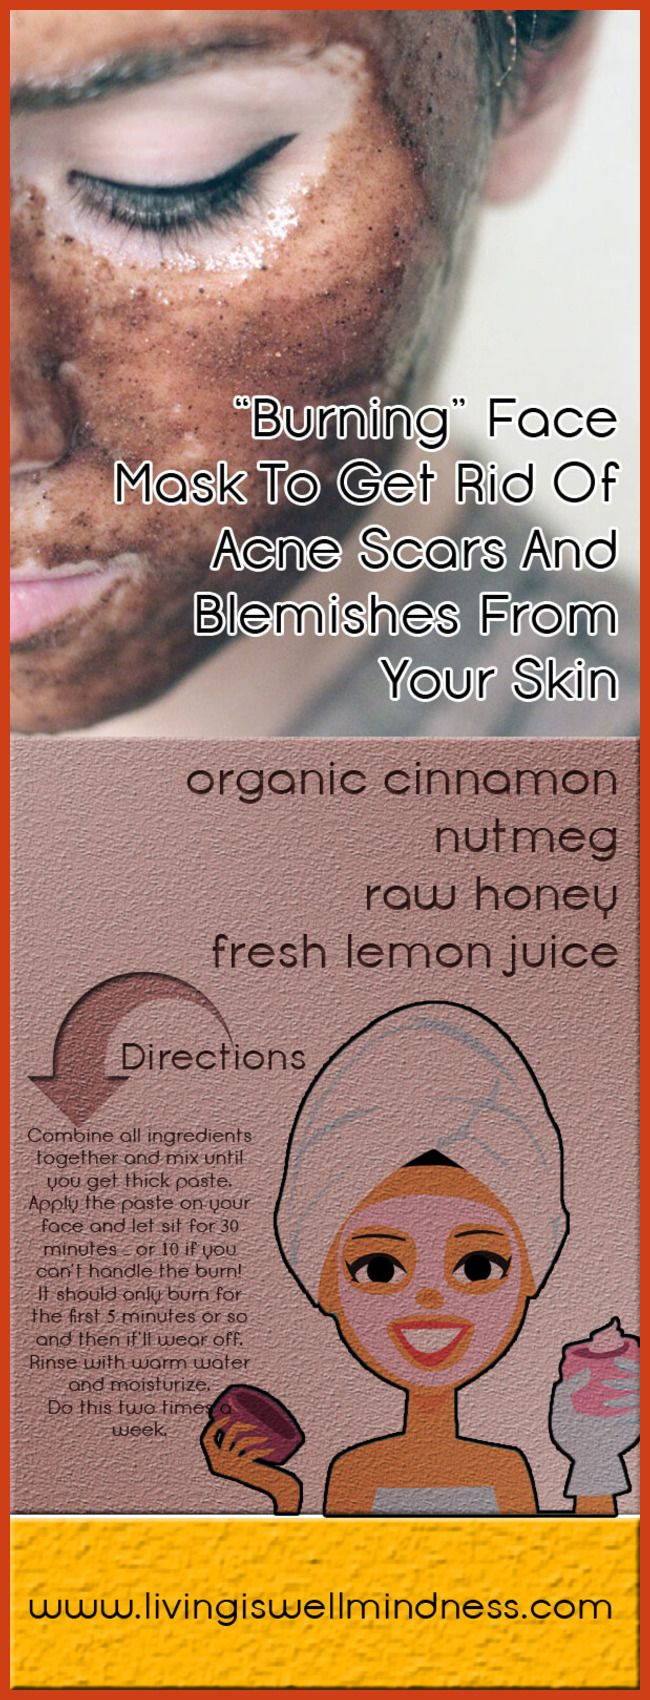 Piercing nose through scar tissue   best useful things to remember images on Pinterest  Cleaning